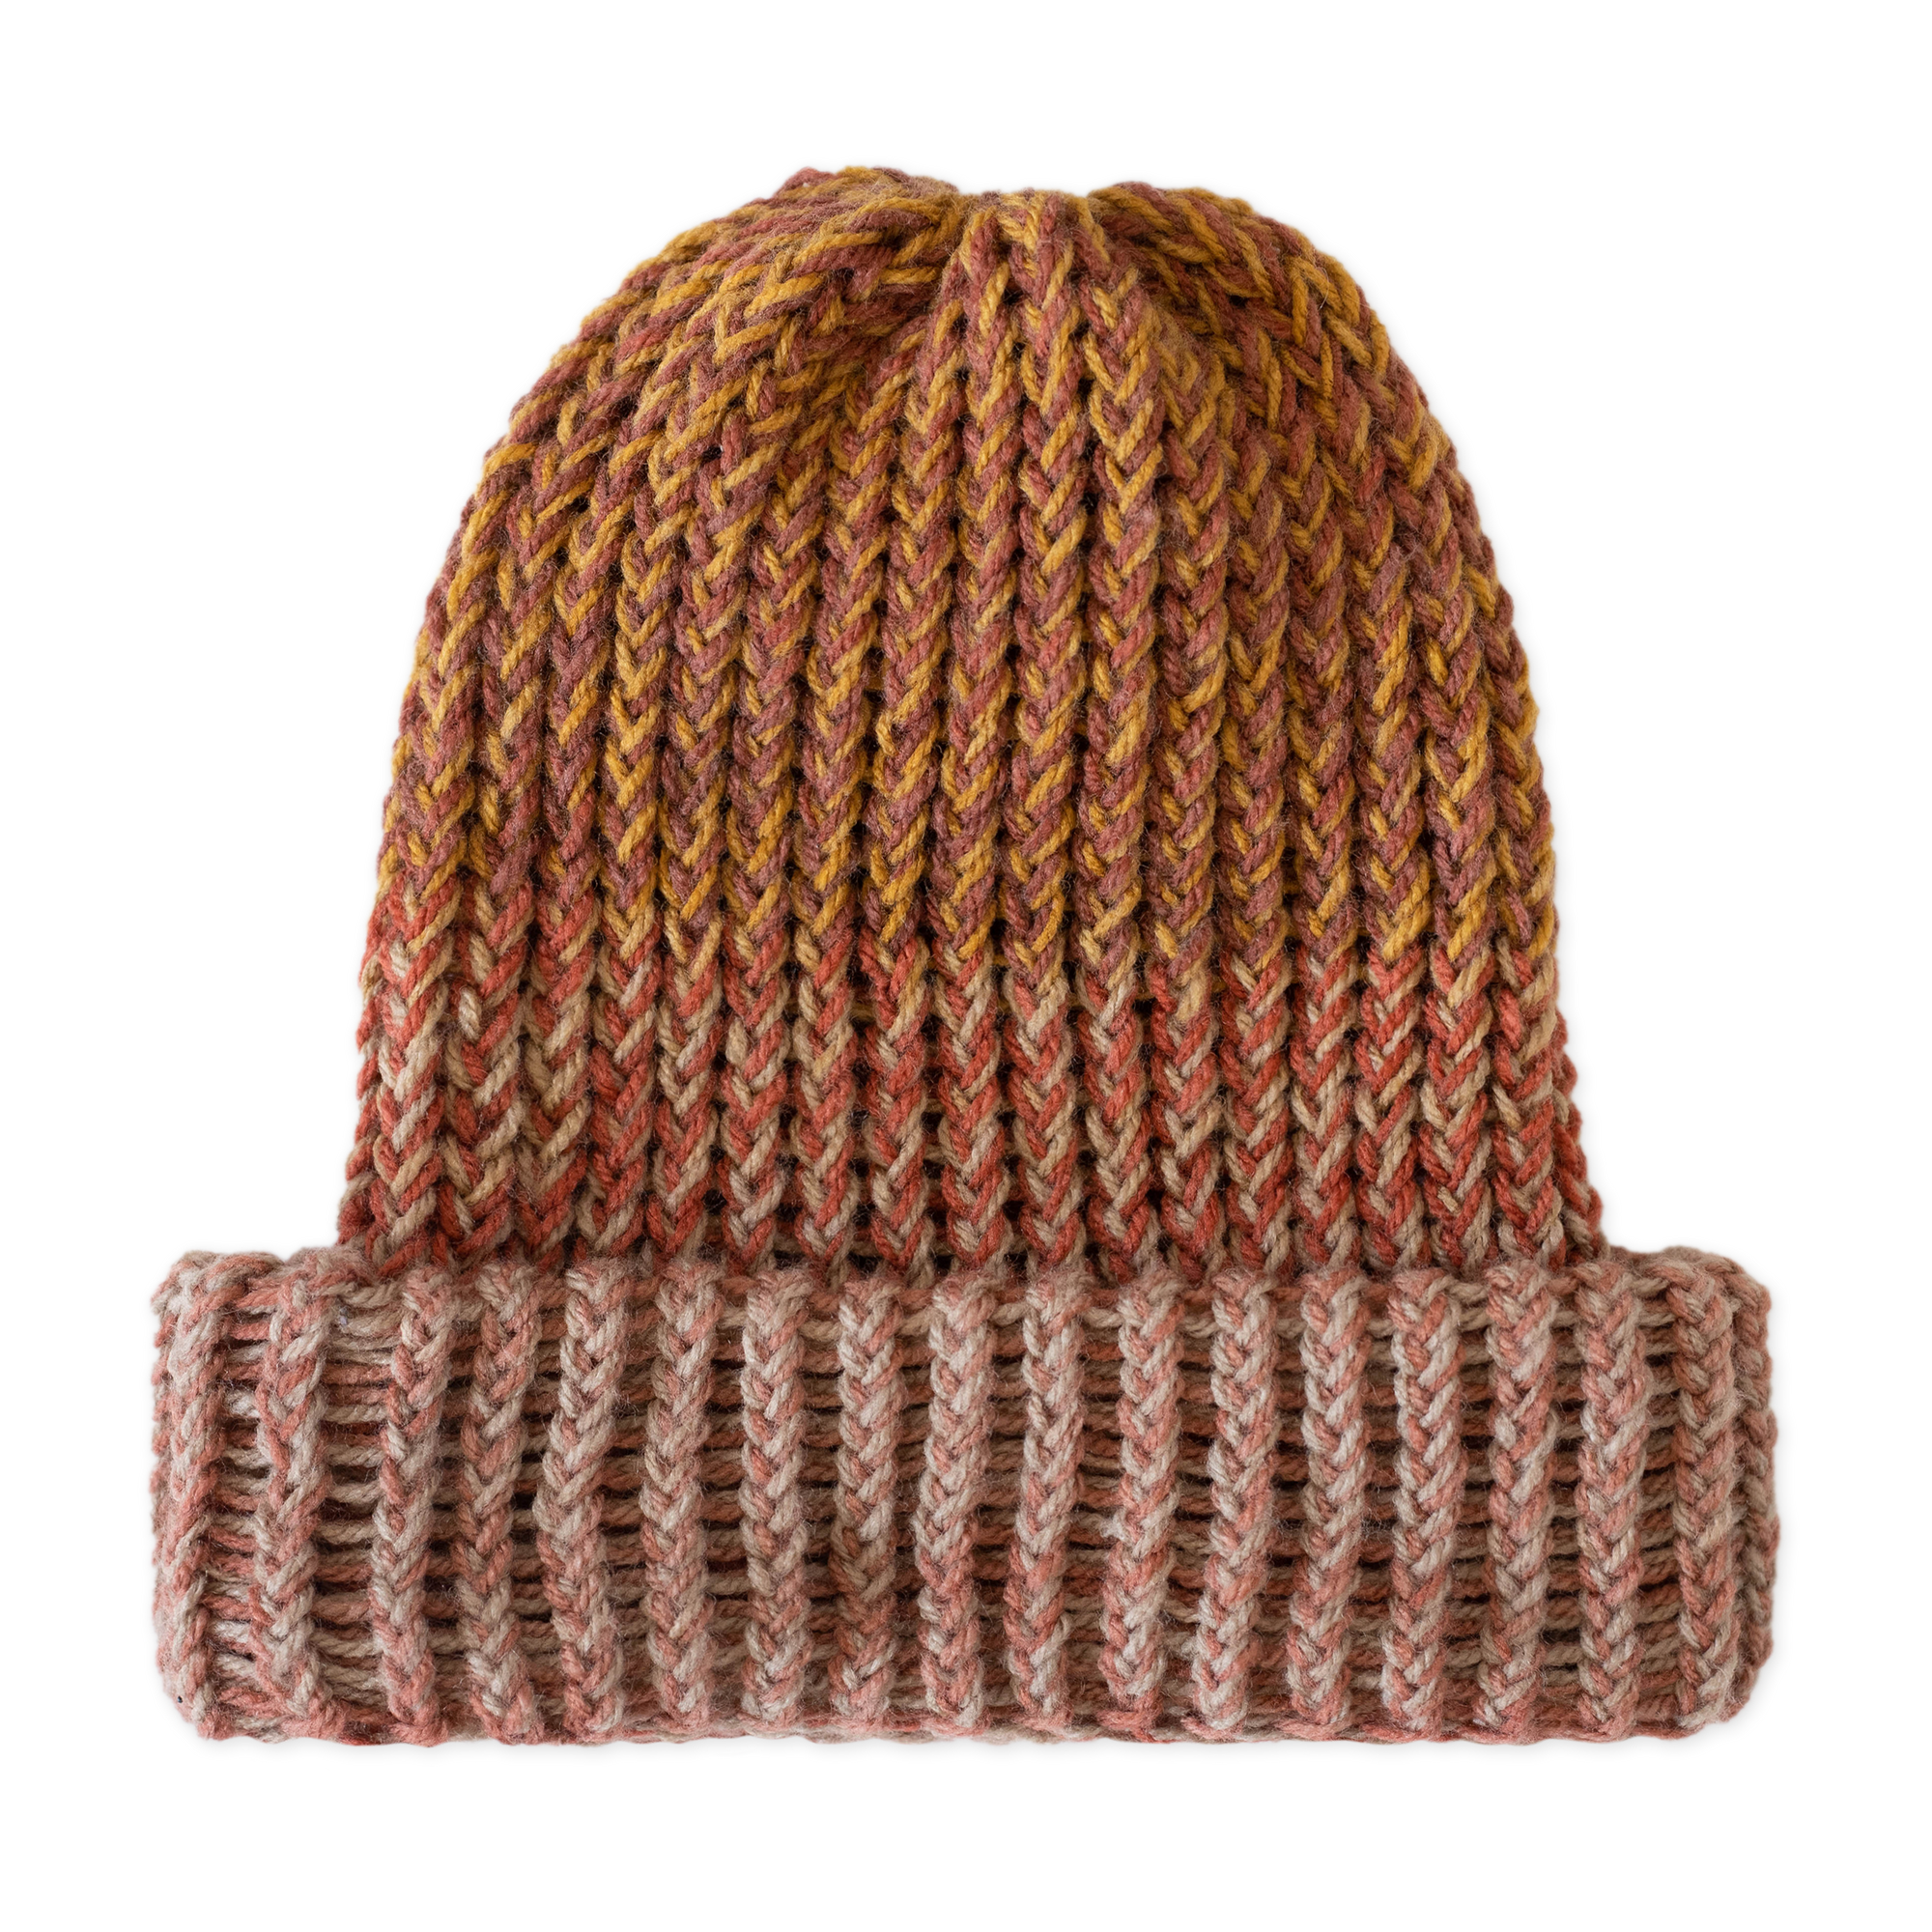 Load image into Gallery viewer, Hand Knitted Beanie Brown Marle | CHECKS DOWNTOWN